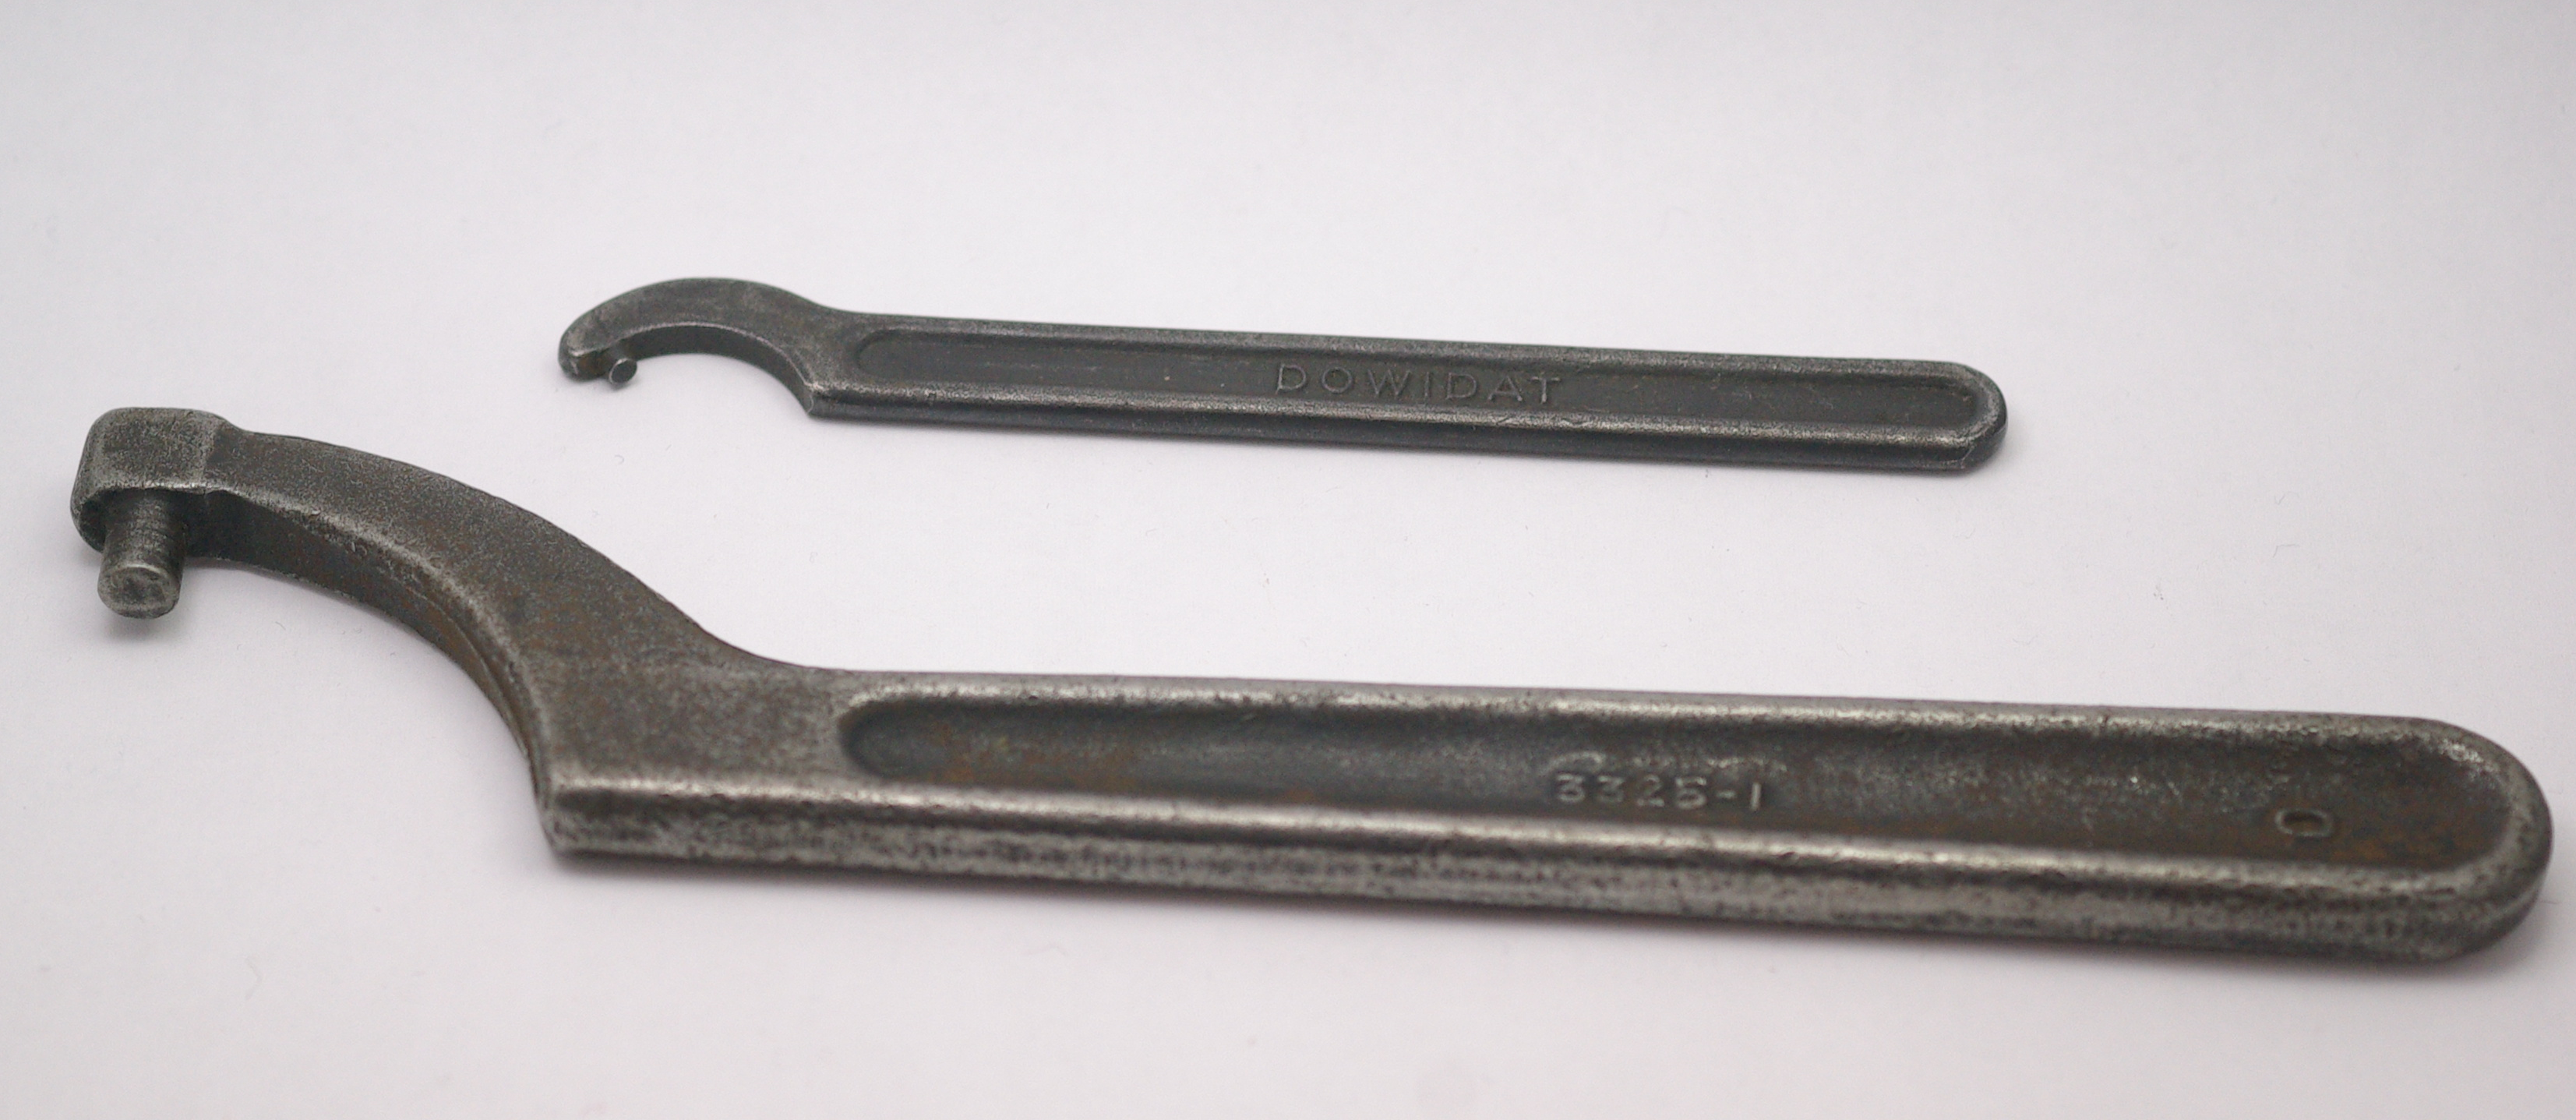 What Is A Pin Wrench